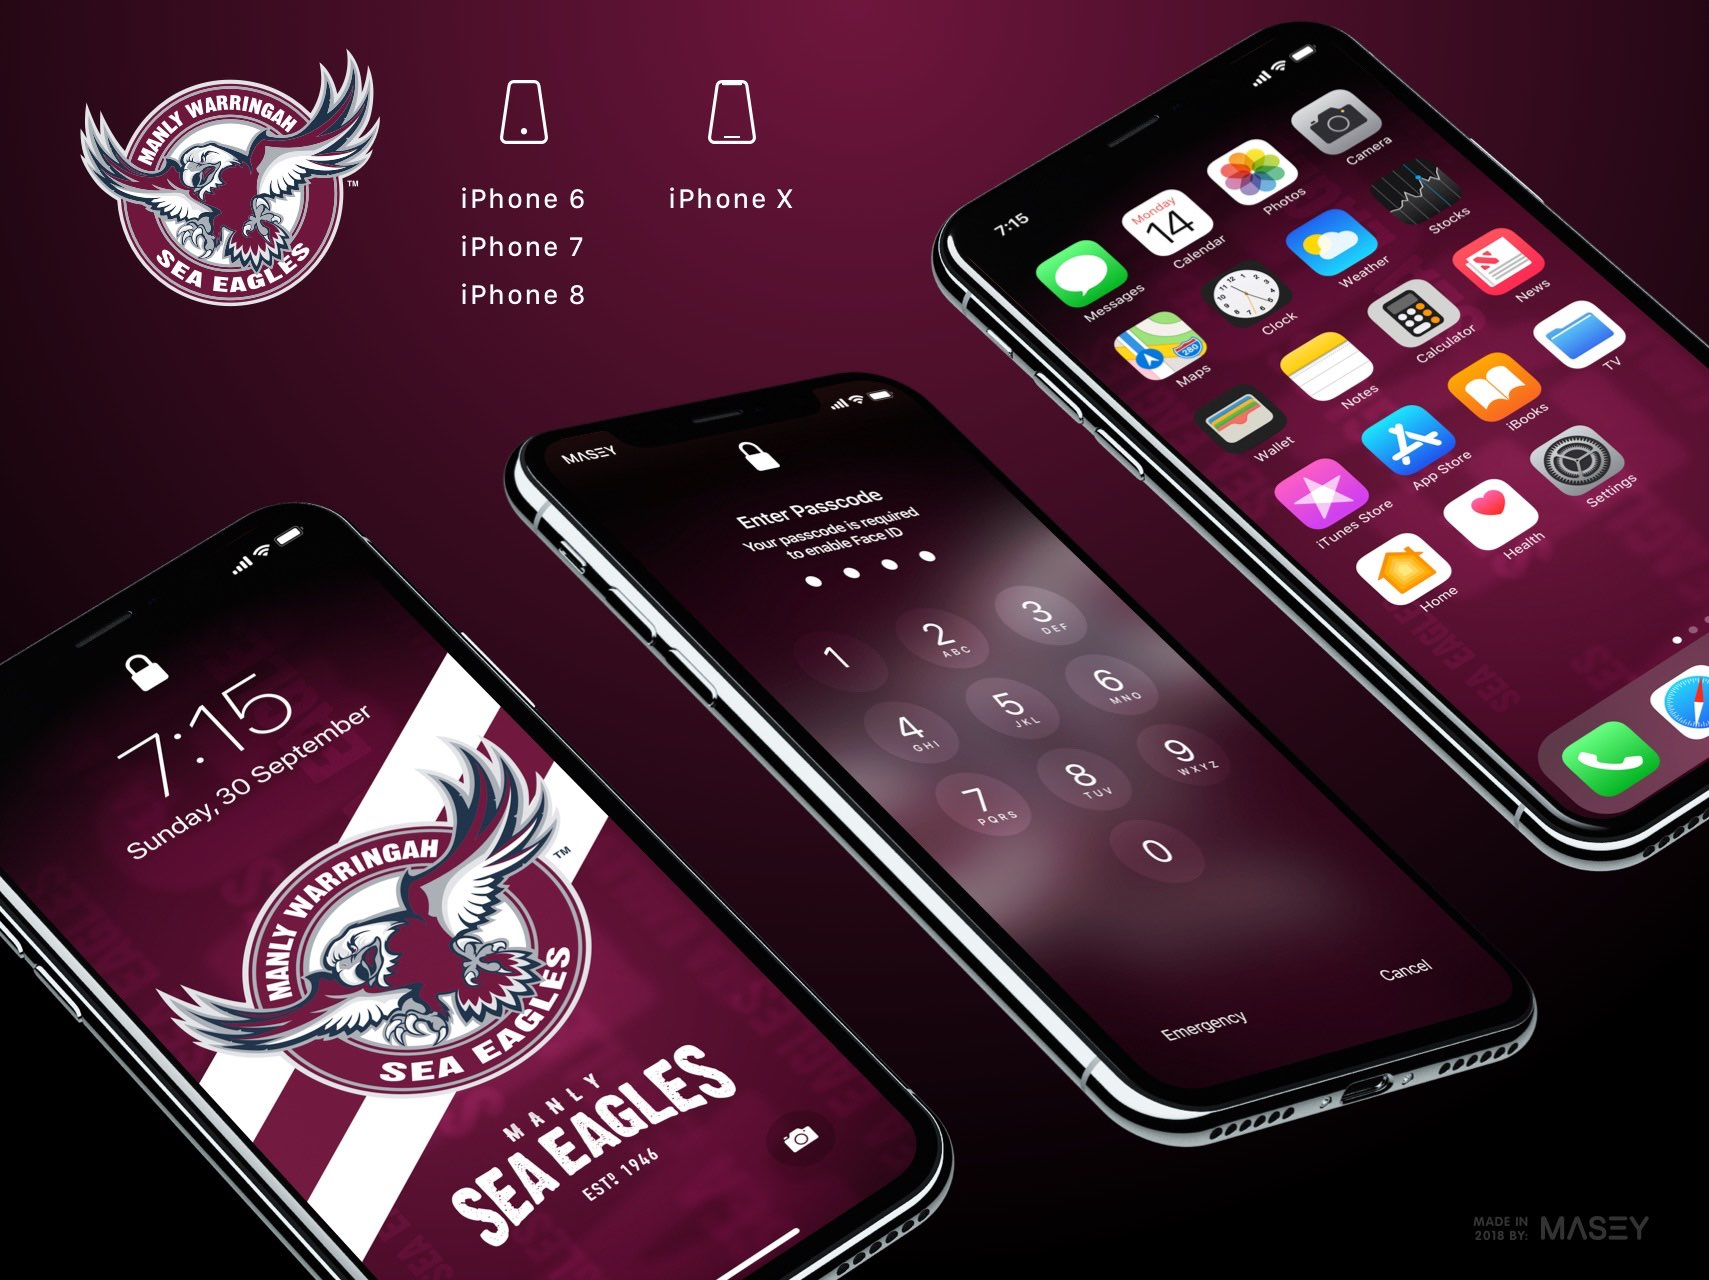 Manly Sea Eagles iPhone Wallpaper